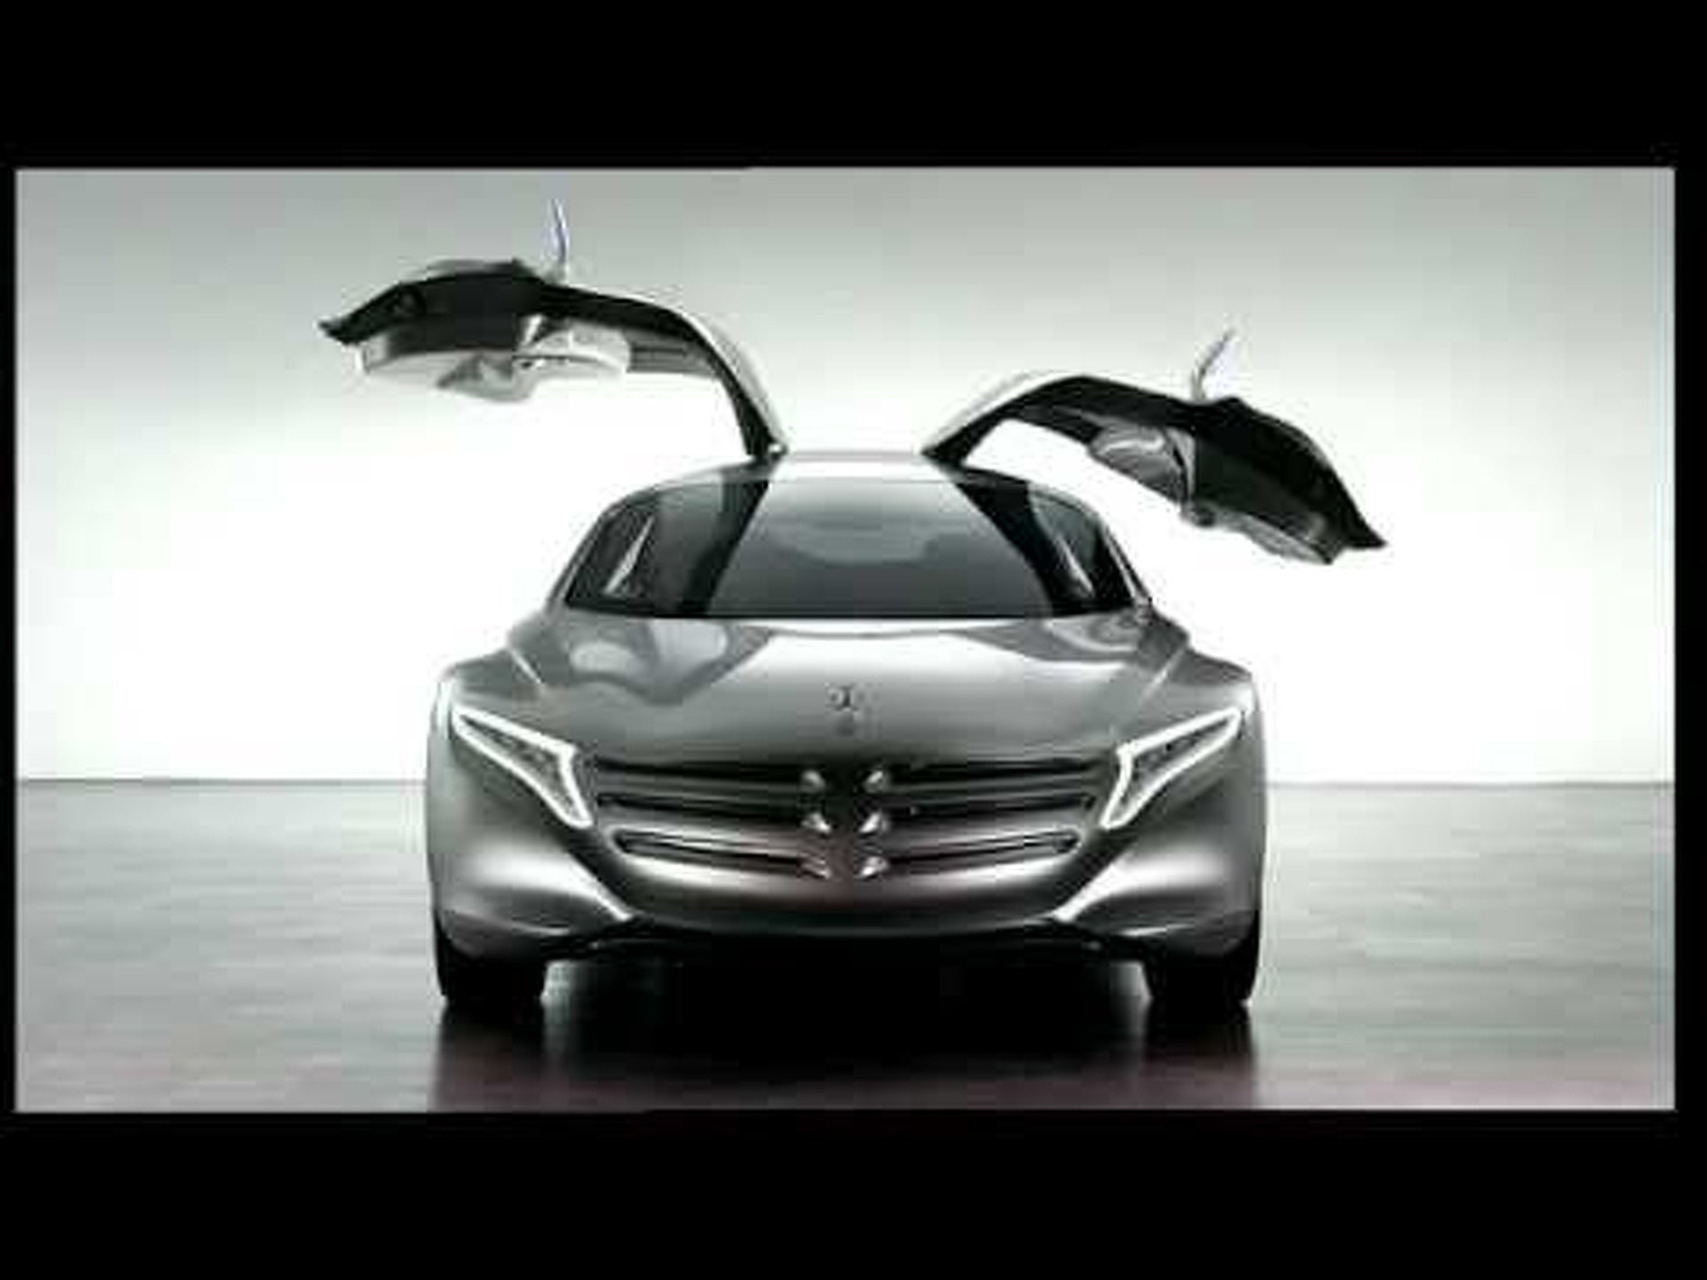 2011 Mercedes-Benz F 125! Research Vehicle